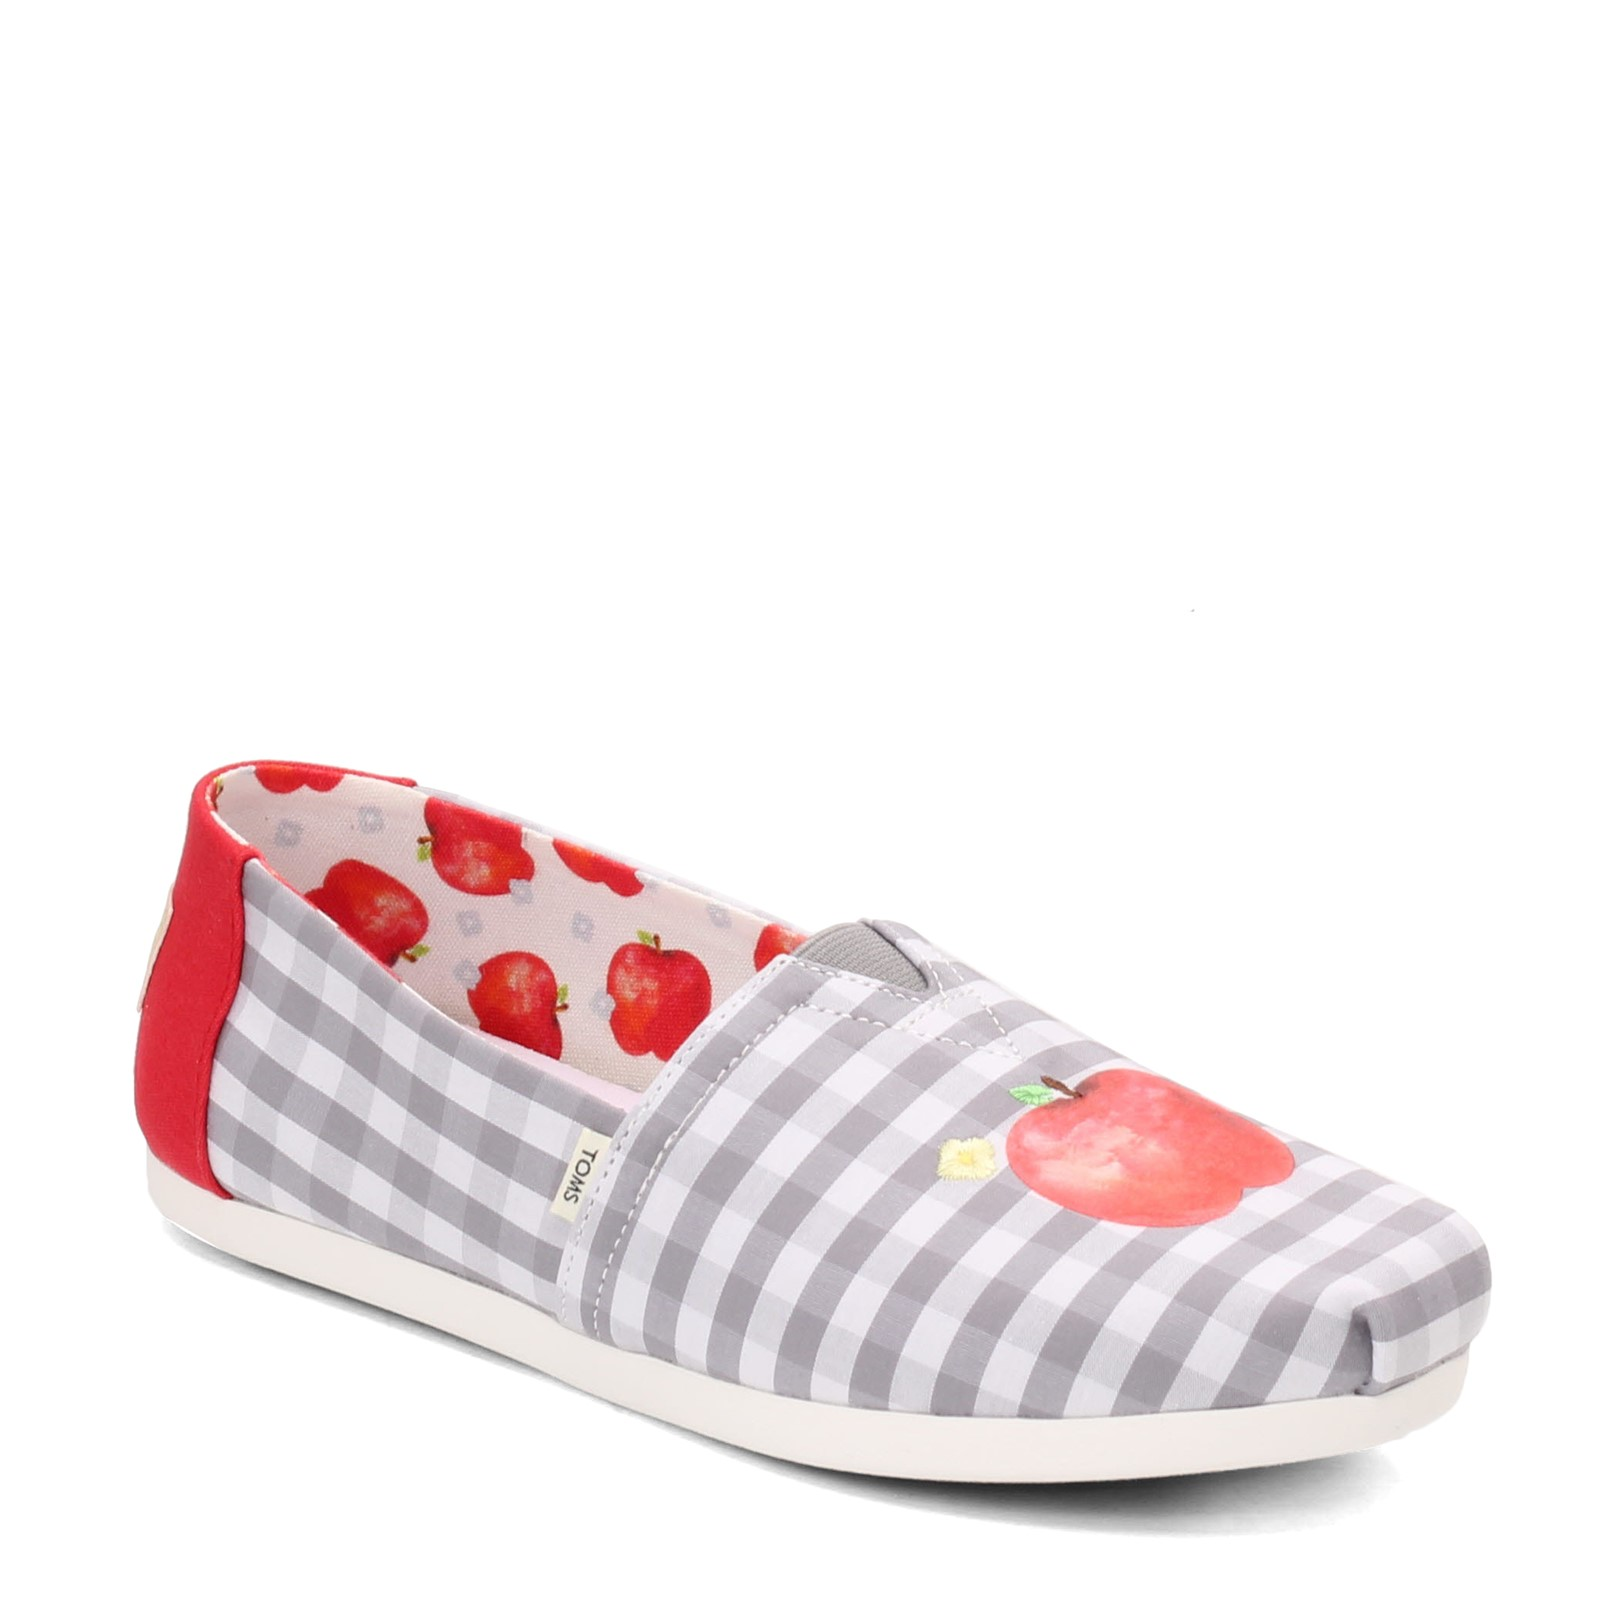 Women's Toms, CloudBound Alpargata Slip-On